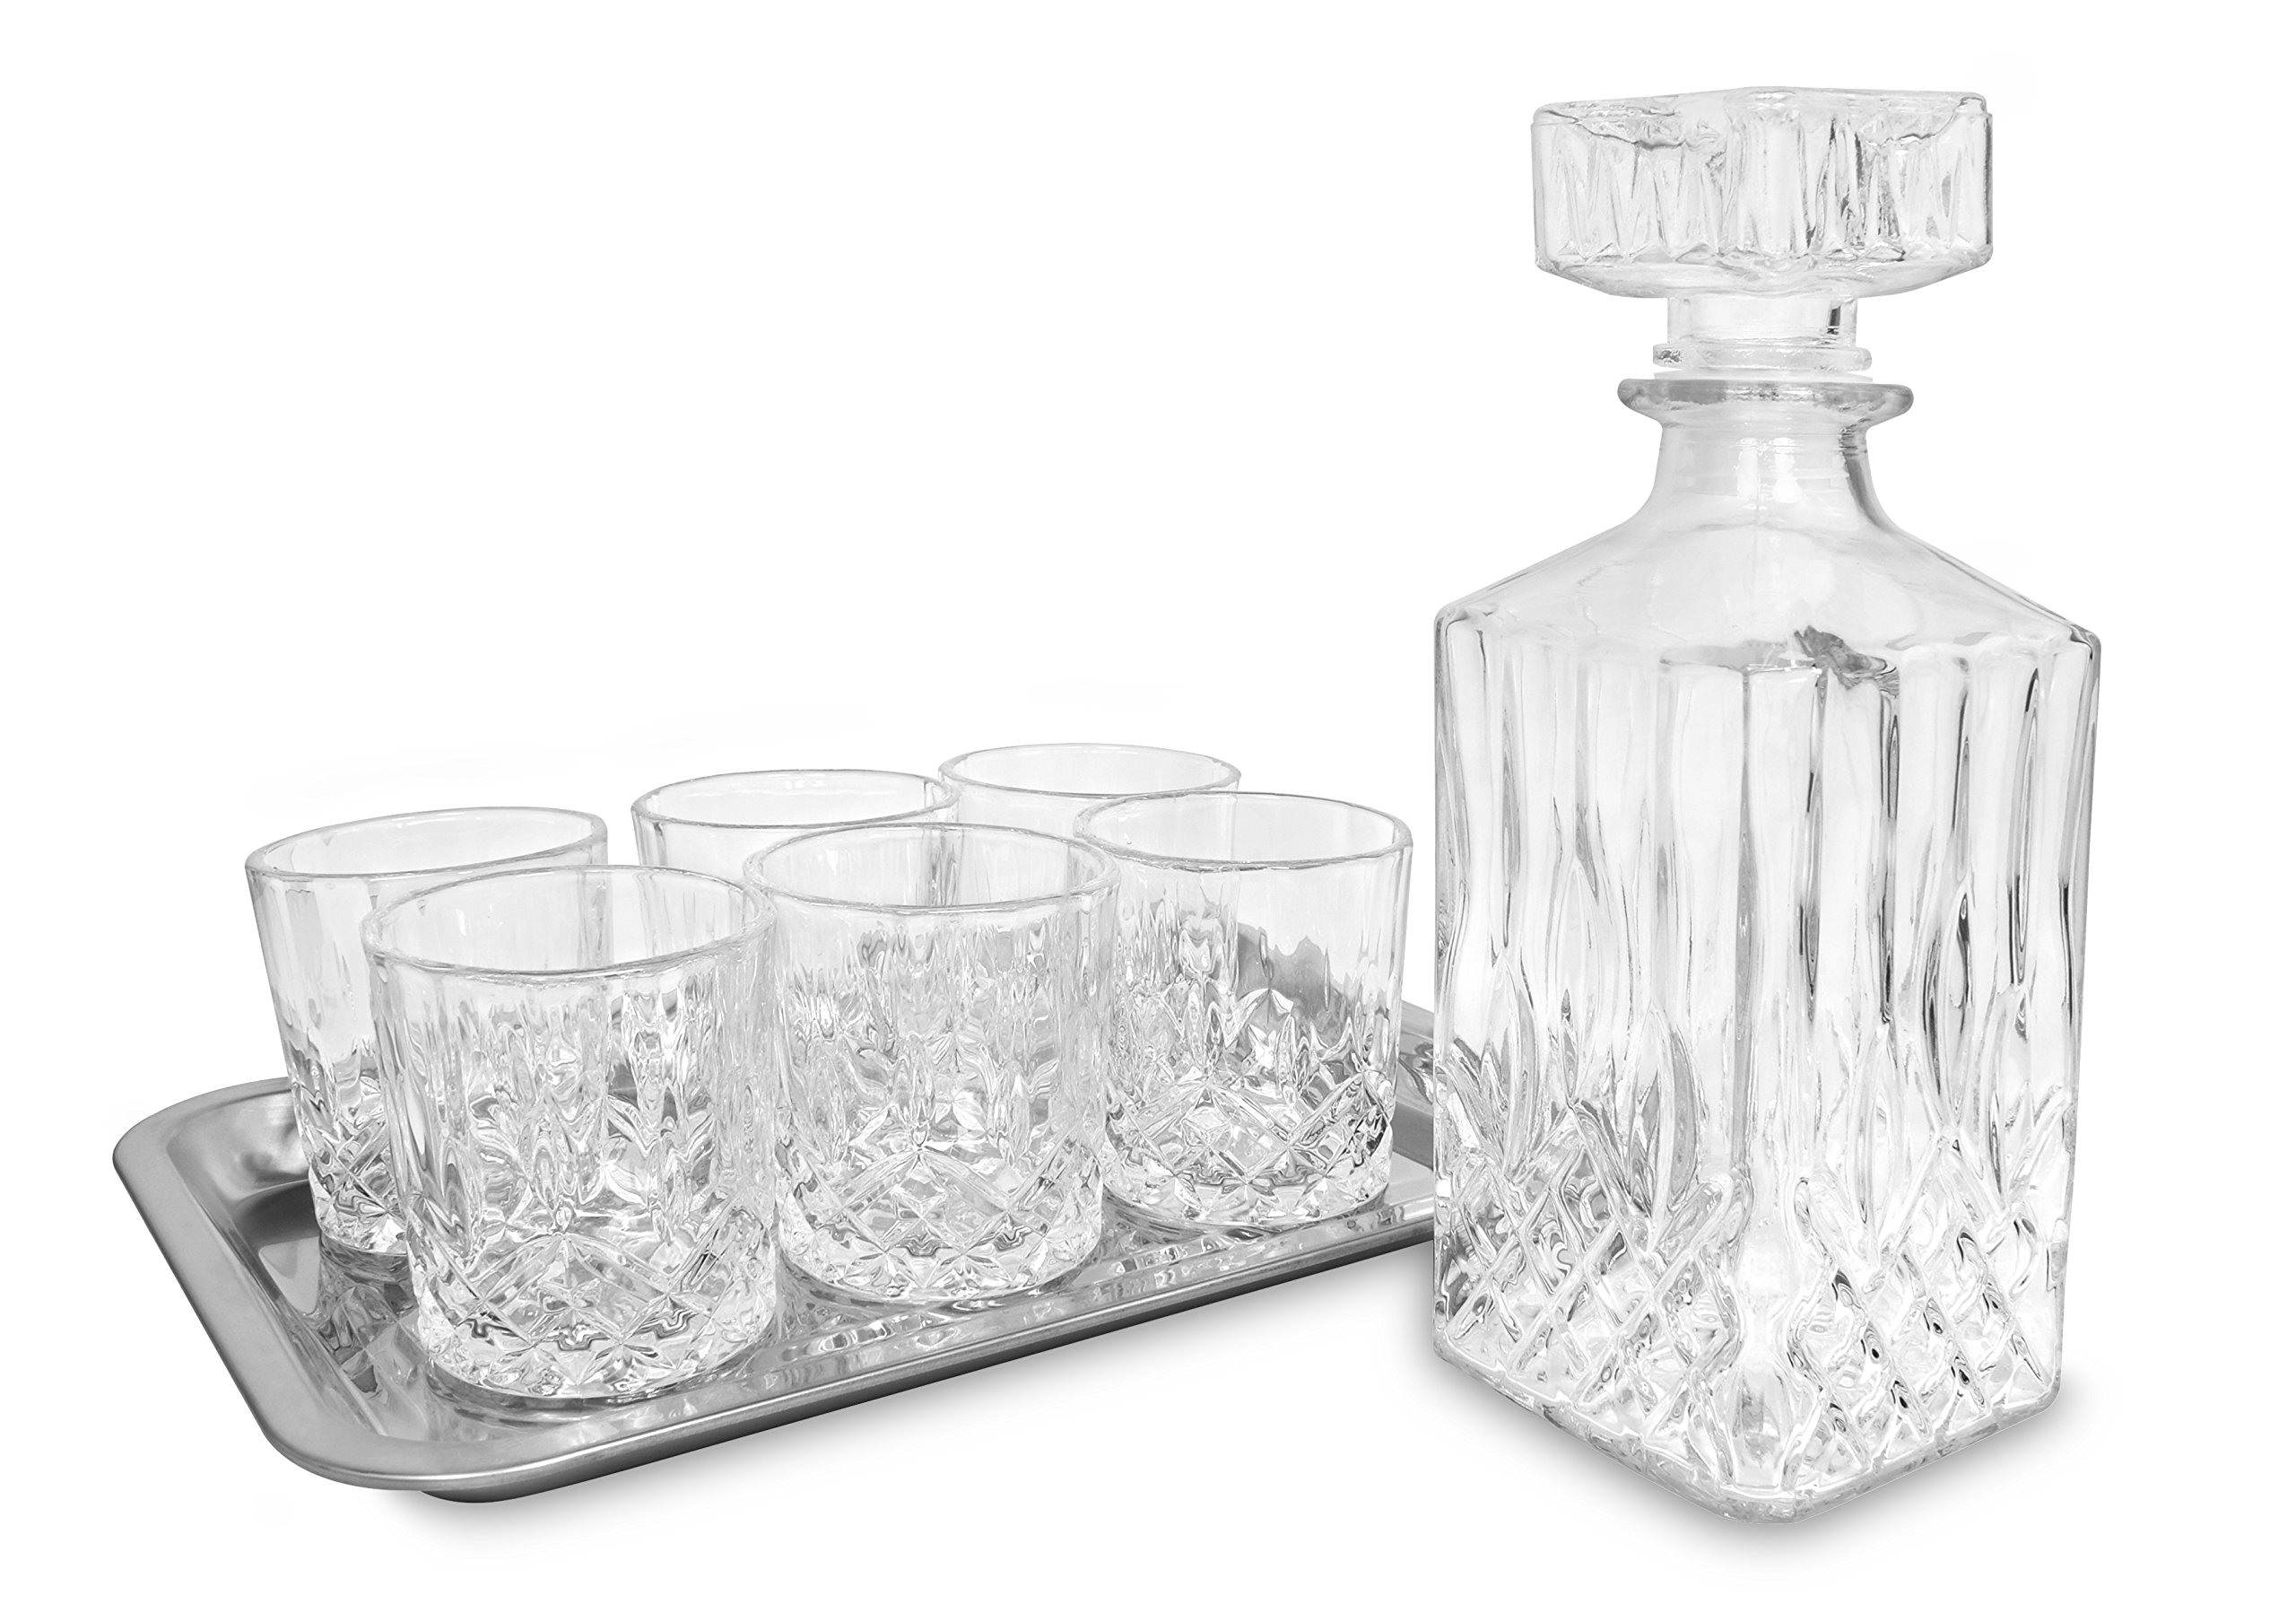 KOVOT 8 Piece Whiskey Bar Set - Includes Decanter, (6) Glasses and Tray